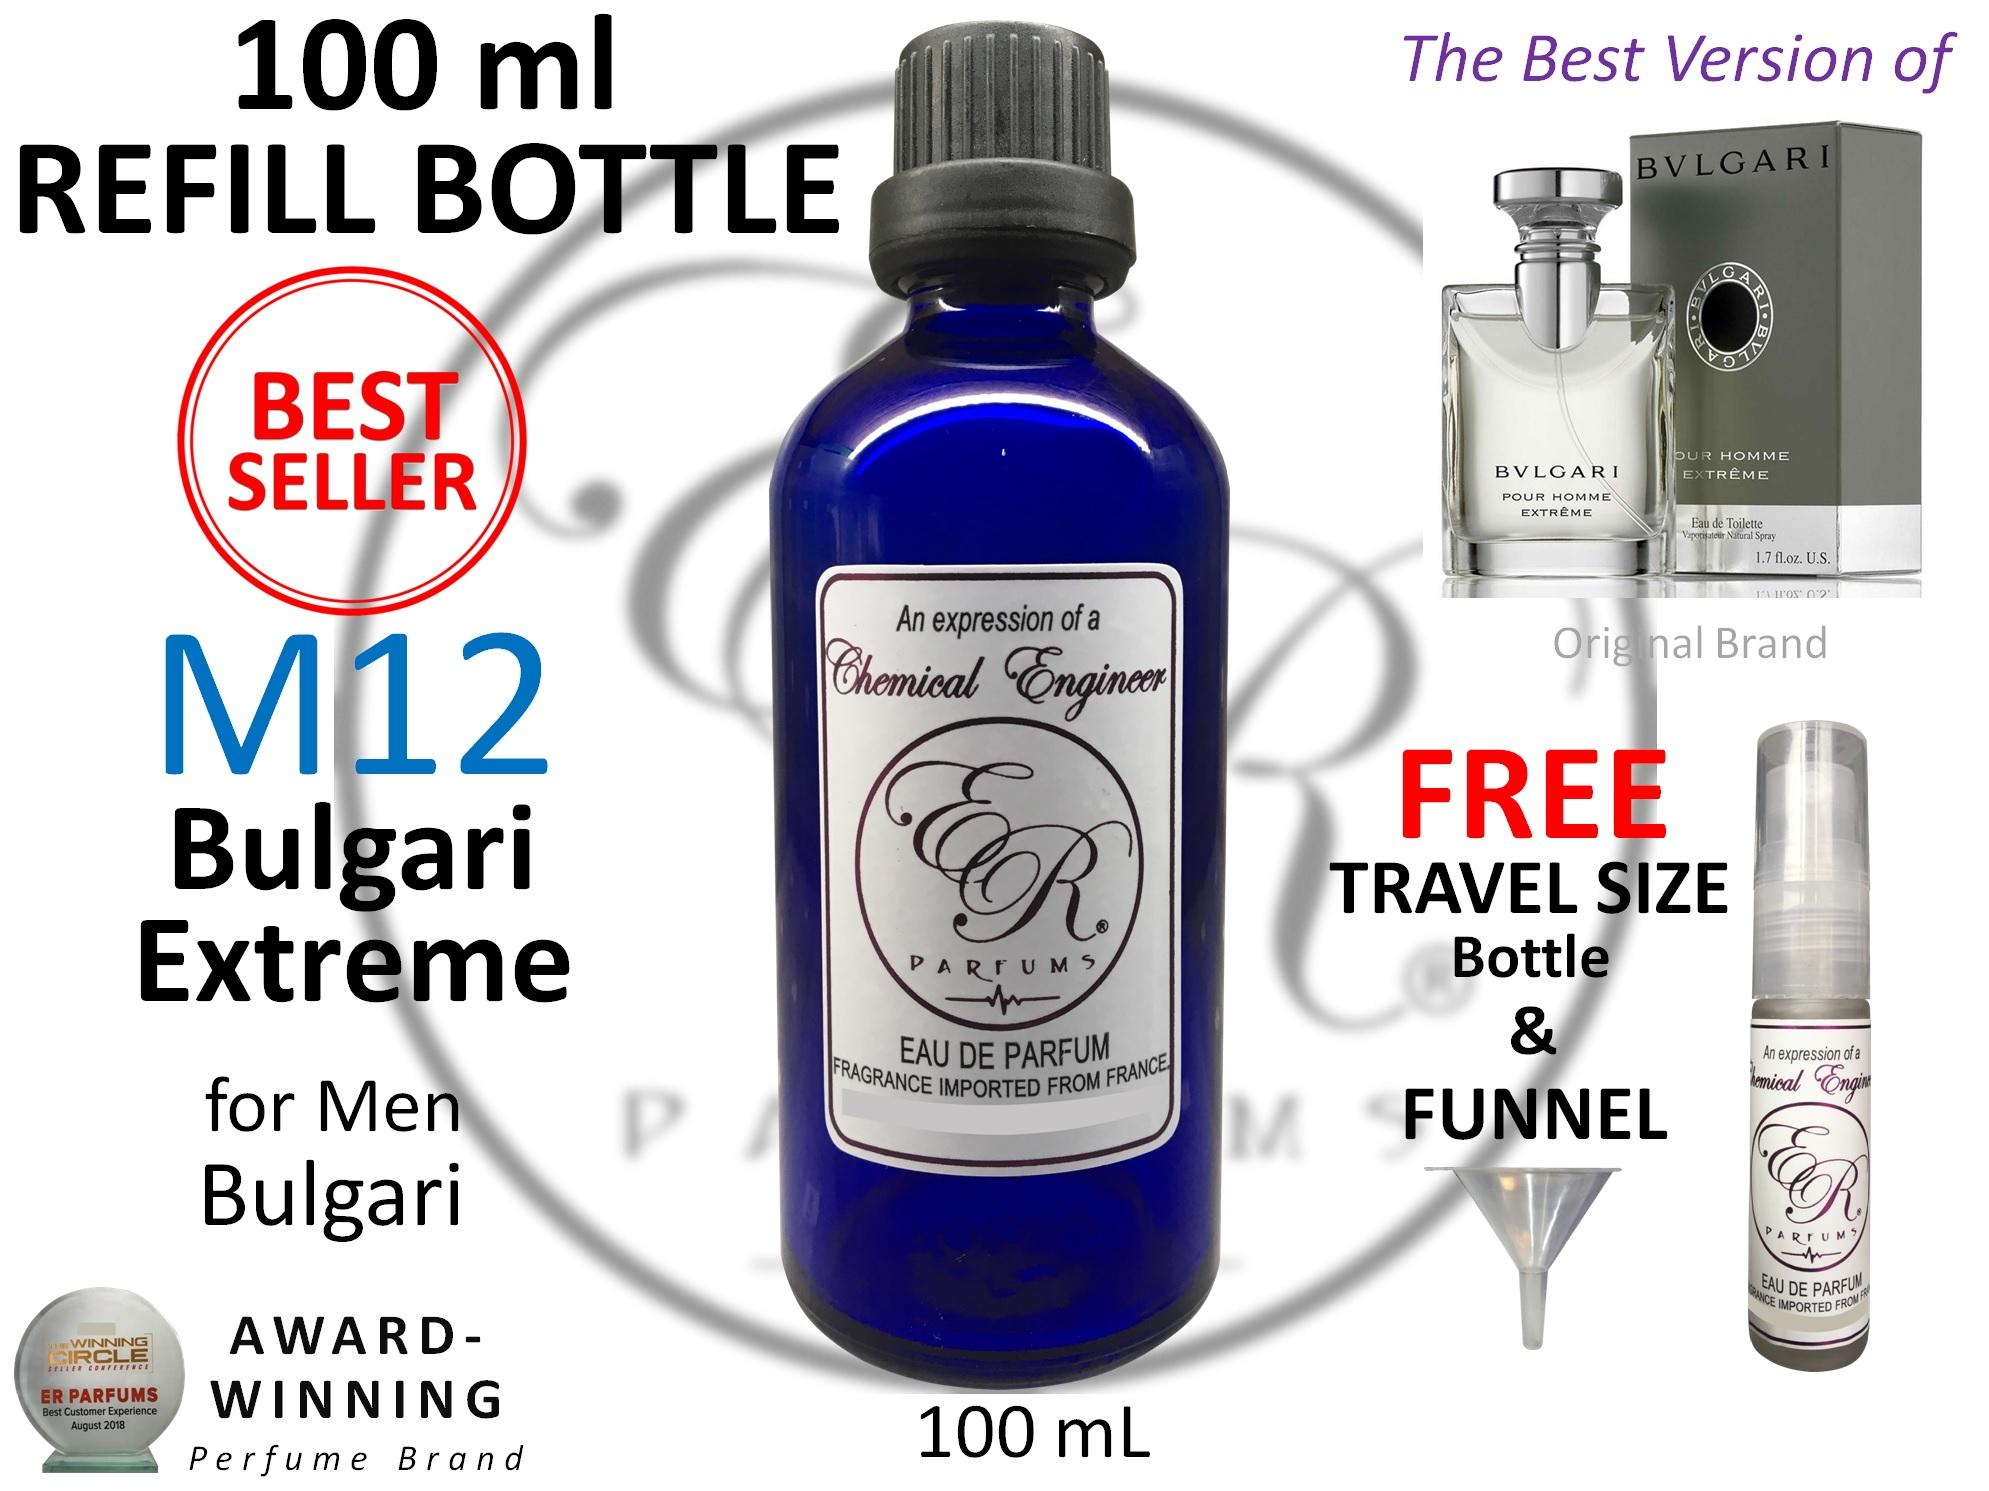 Mens Cologne Brands Fragrance On Sale Prices Set Bvlgari Blv Blue Men Edt 100ml Er Parfums M12 Bulgari Extreme For By 1 Piece 100 Ml Refill Bottle With